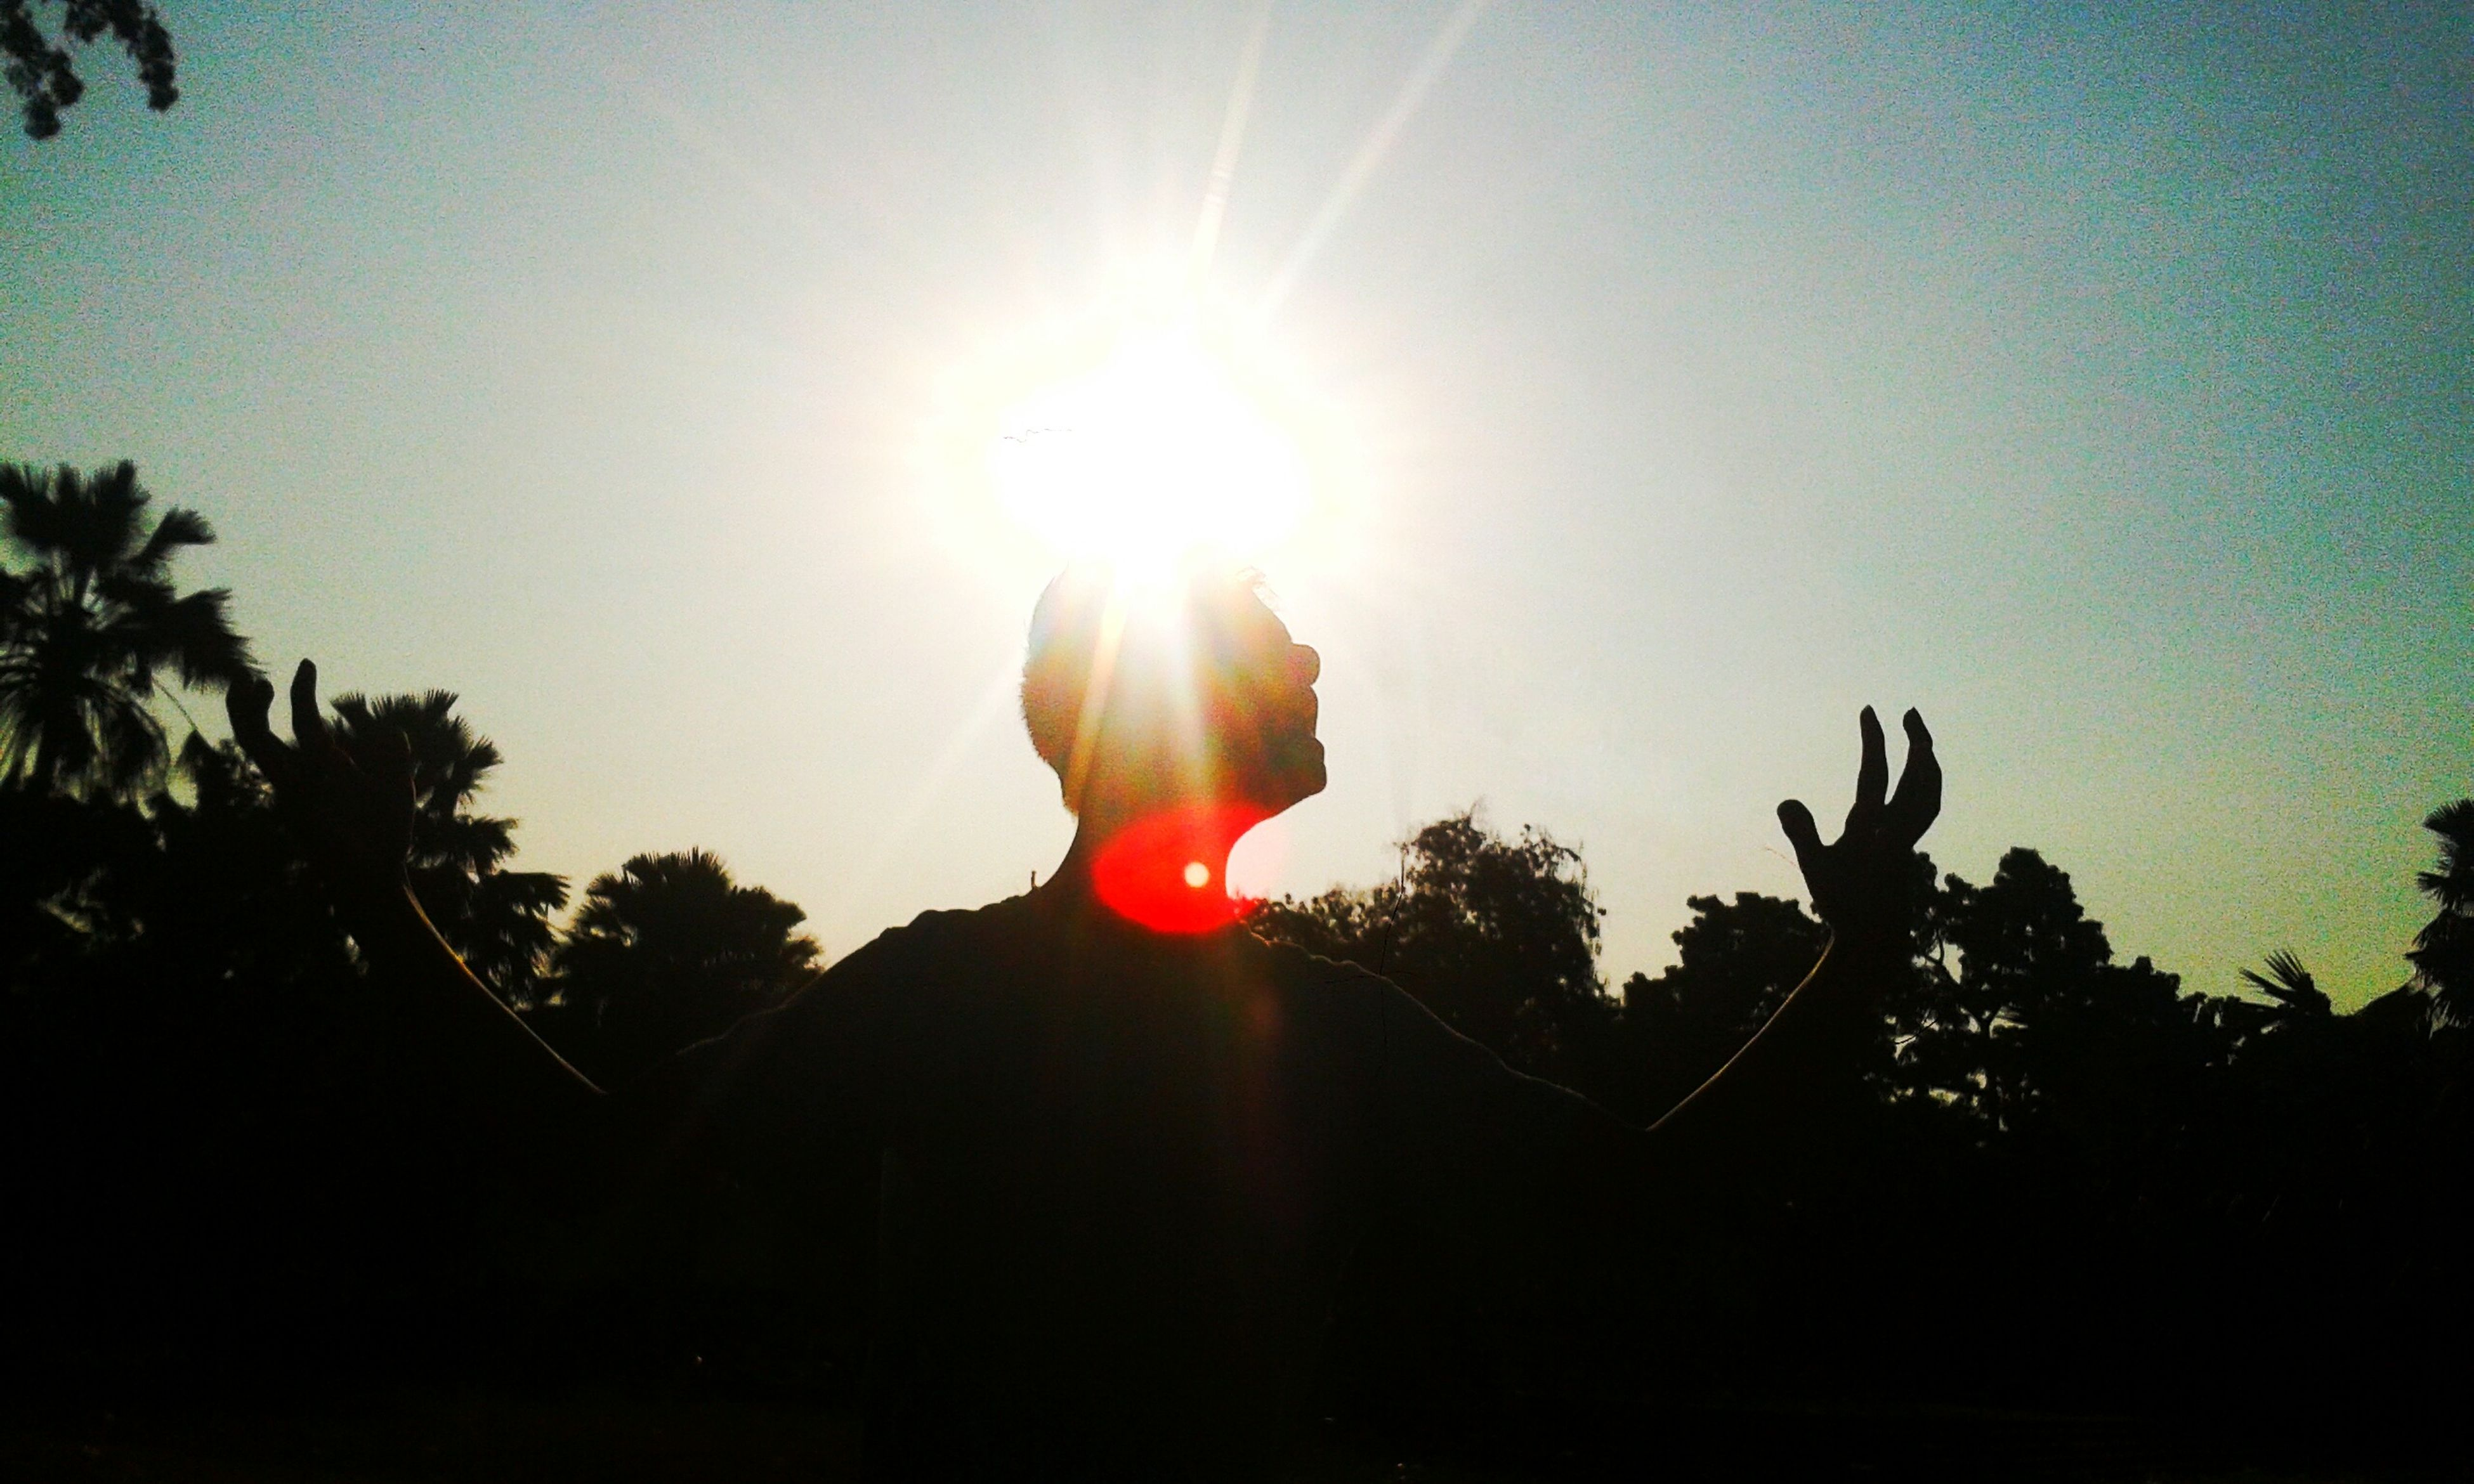 sun, lens flare, sunlight, sunbeam, tree, real people, sky, one person, leisure activity, outdoors, nature, day, adult, people